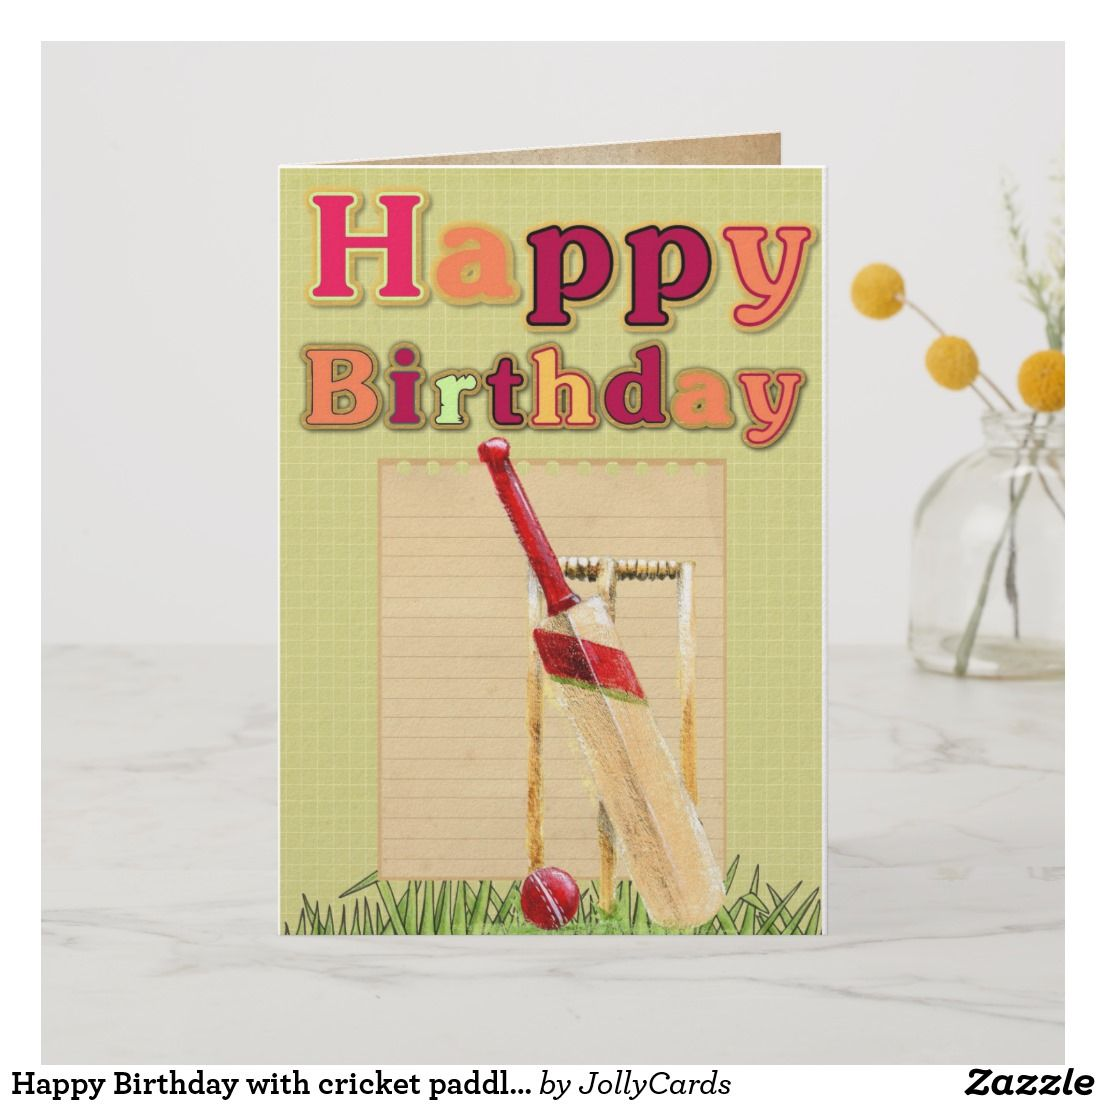 Happy Birthday With Cricket Paddle And Ball Card Zazzle Com In 2020 Happy Birthday Cards Happy Birthday Vintage Happy Birthday